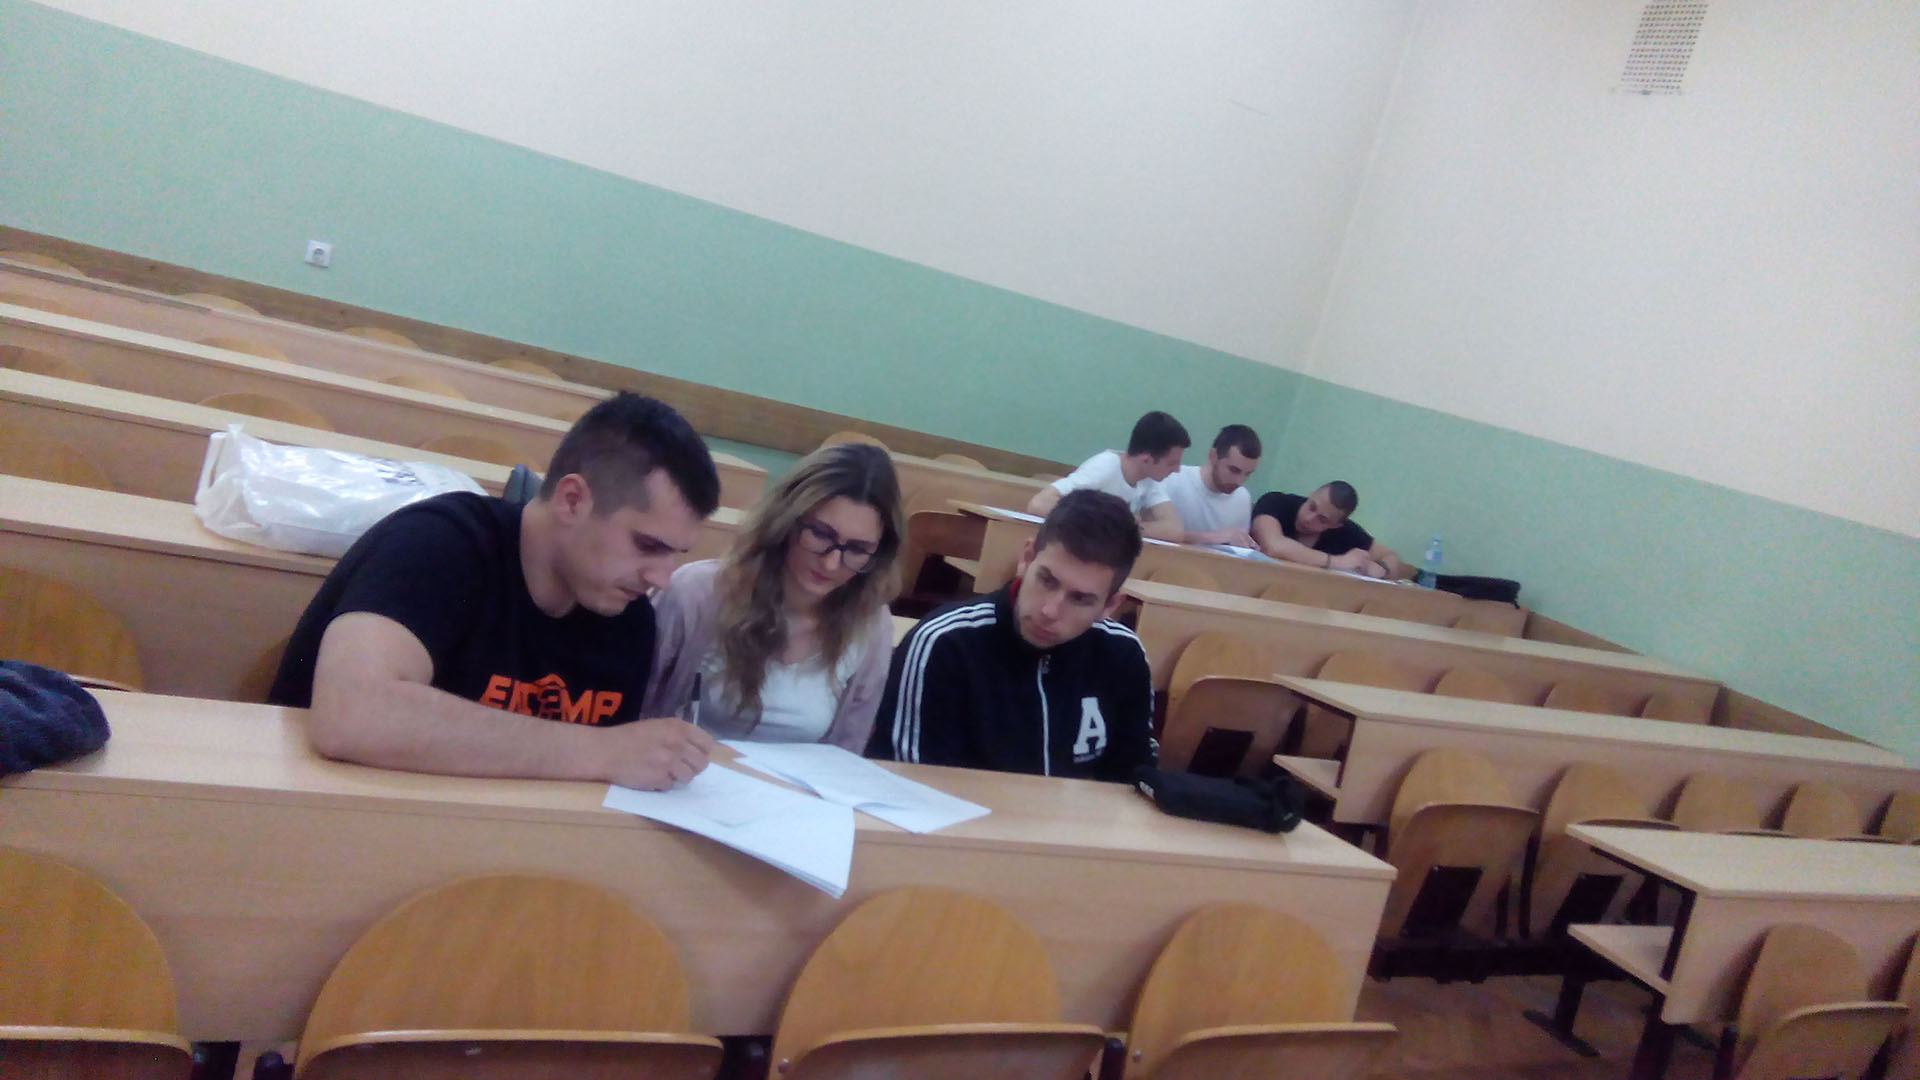 Students solving a test